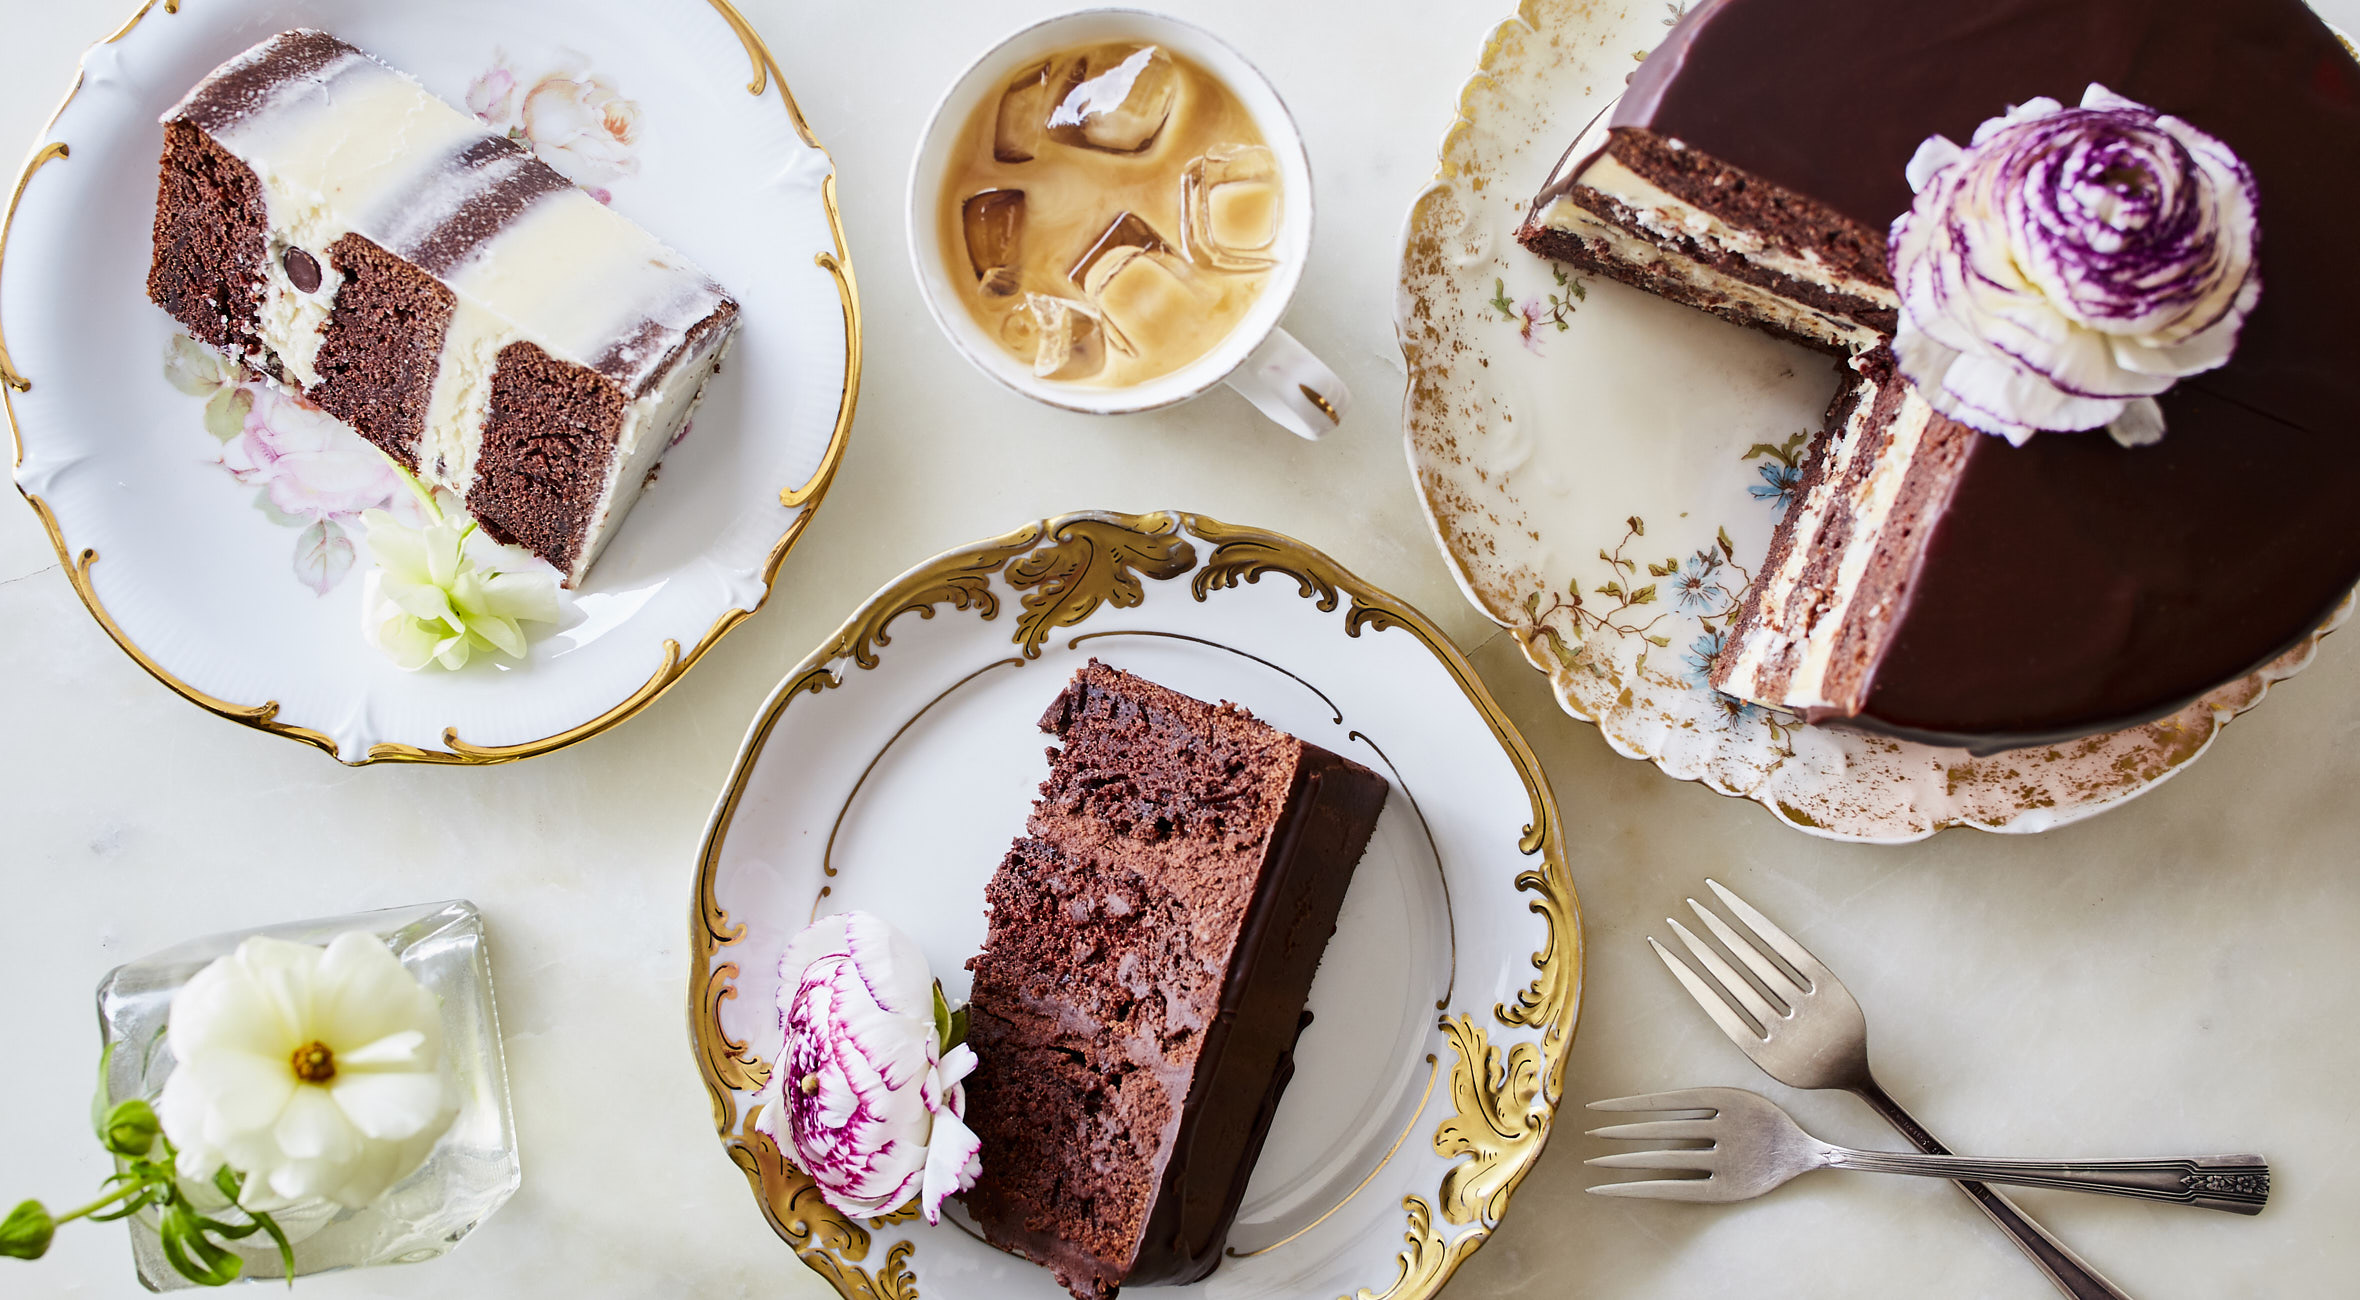 $20 Towards Whatever You Like at Luckybird Bakery – From Handcrafted Cakes to Confections, Baked Goods and Coffee